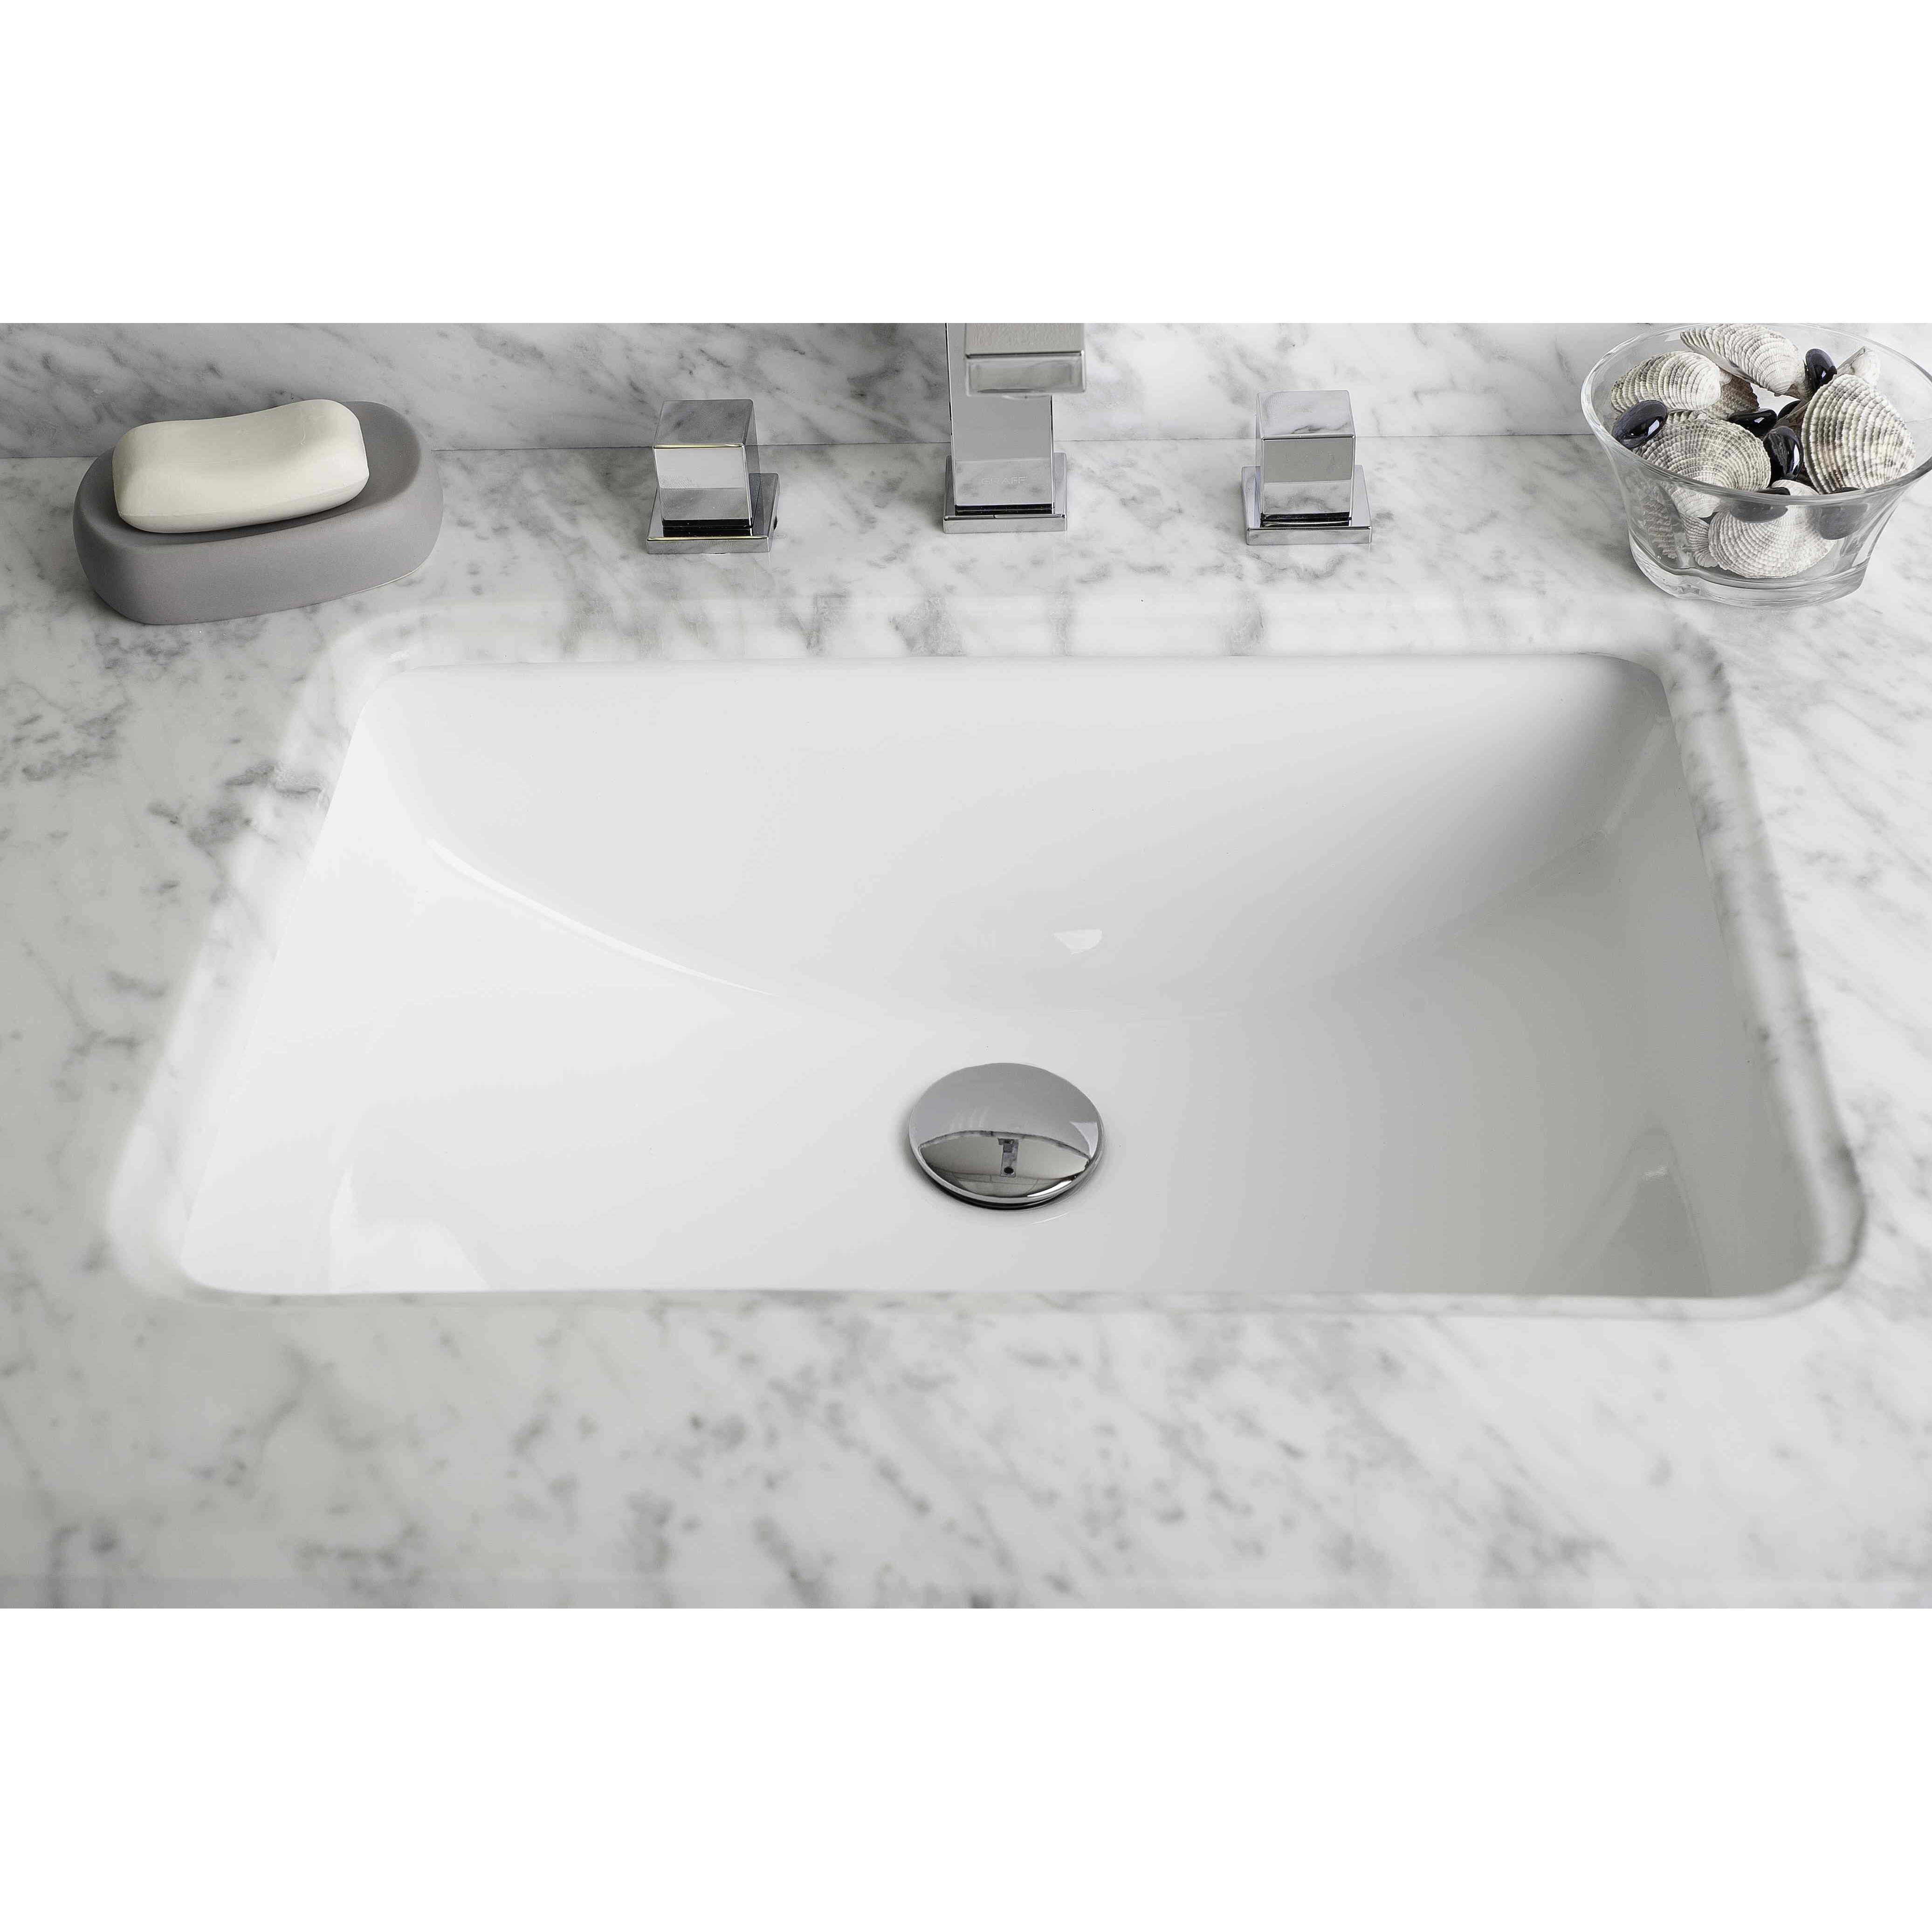 American Imaginations American Imaginations Rectangular Undermount Bathroom Sink With Overflow